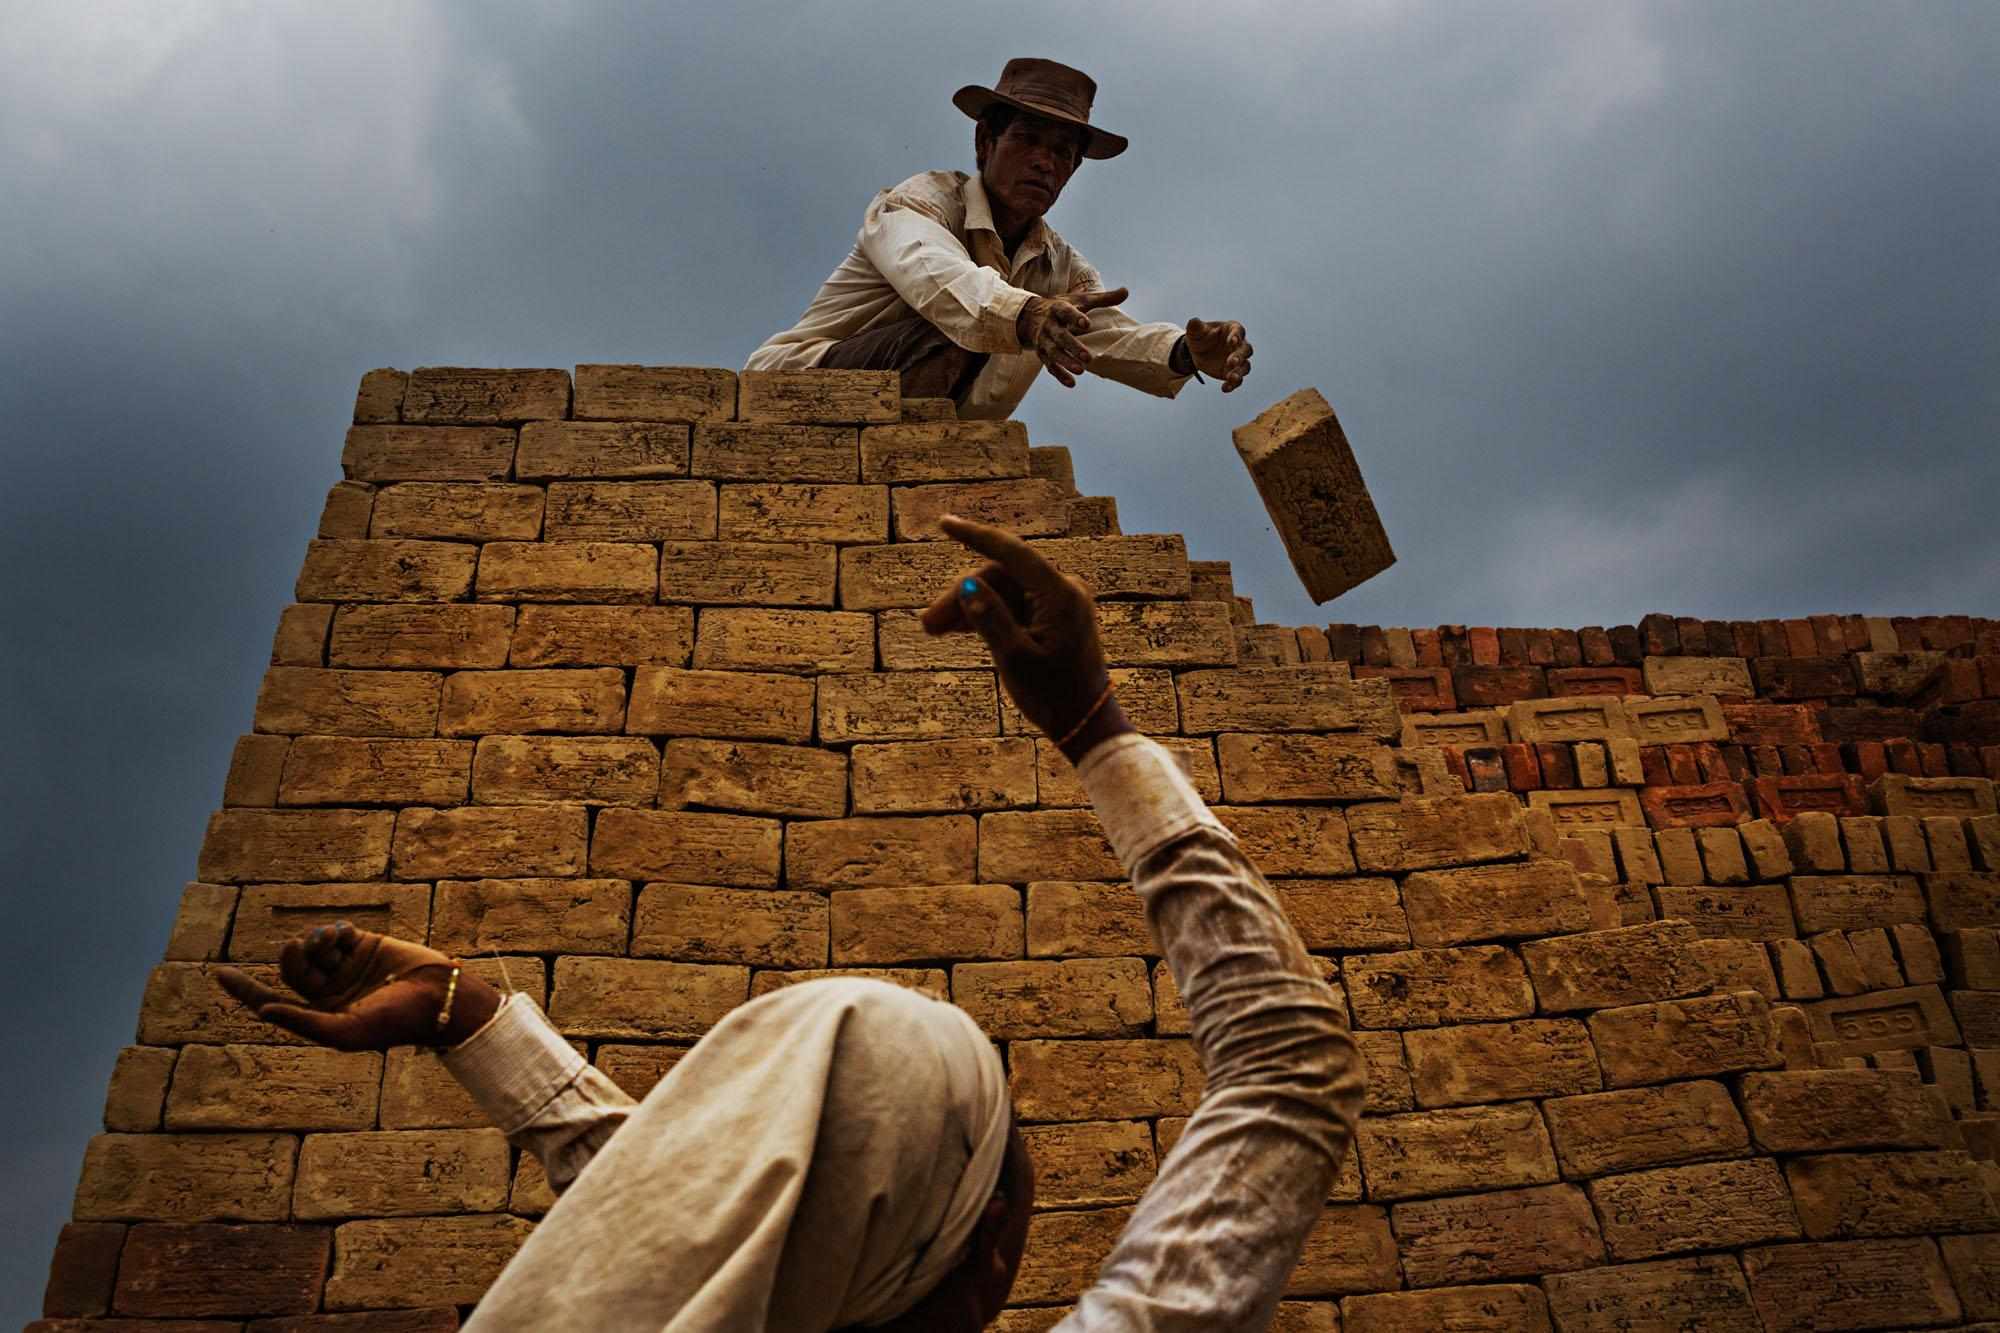 A father-daughter team tosses bricks to each other to build a small kiln on the outskirts of Yangon, Myanmar.